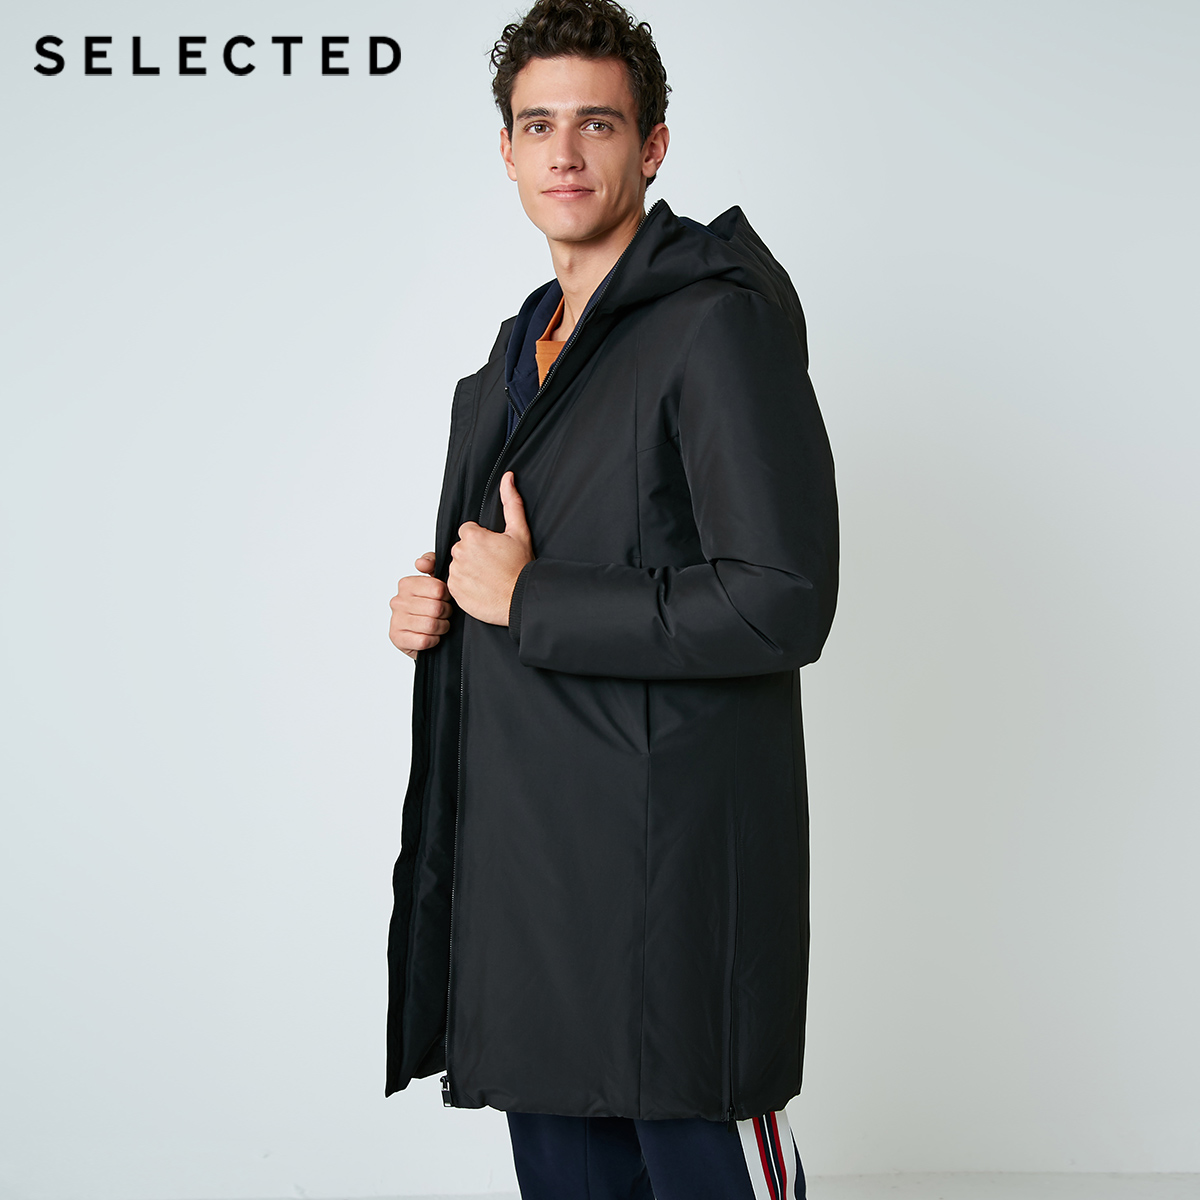 SELECTED Men's Down Jacket Medium Style Hooded Duck Coat Winter Clothes S|418412507